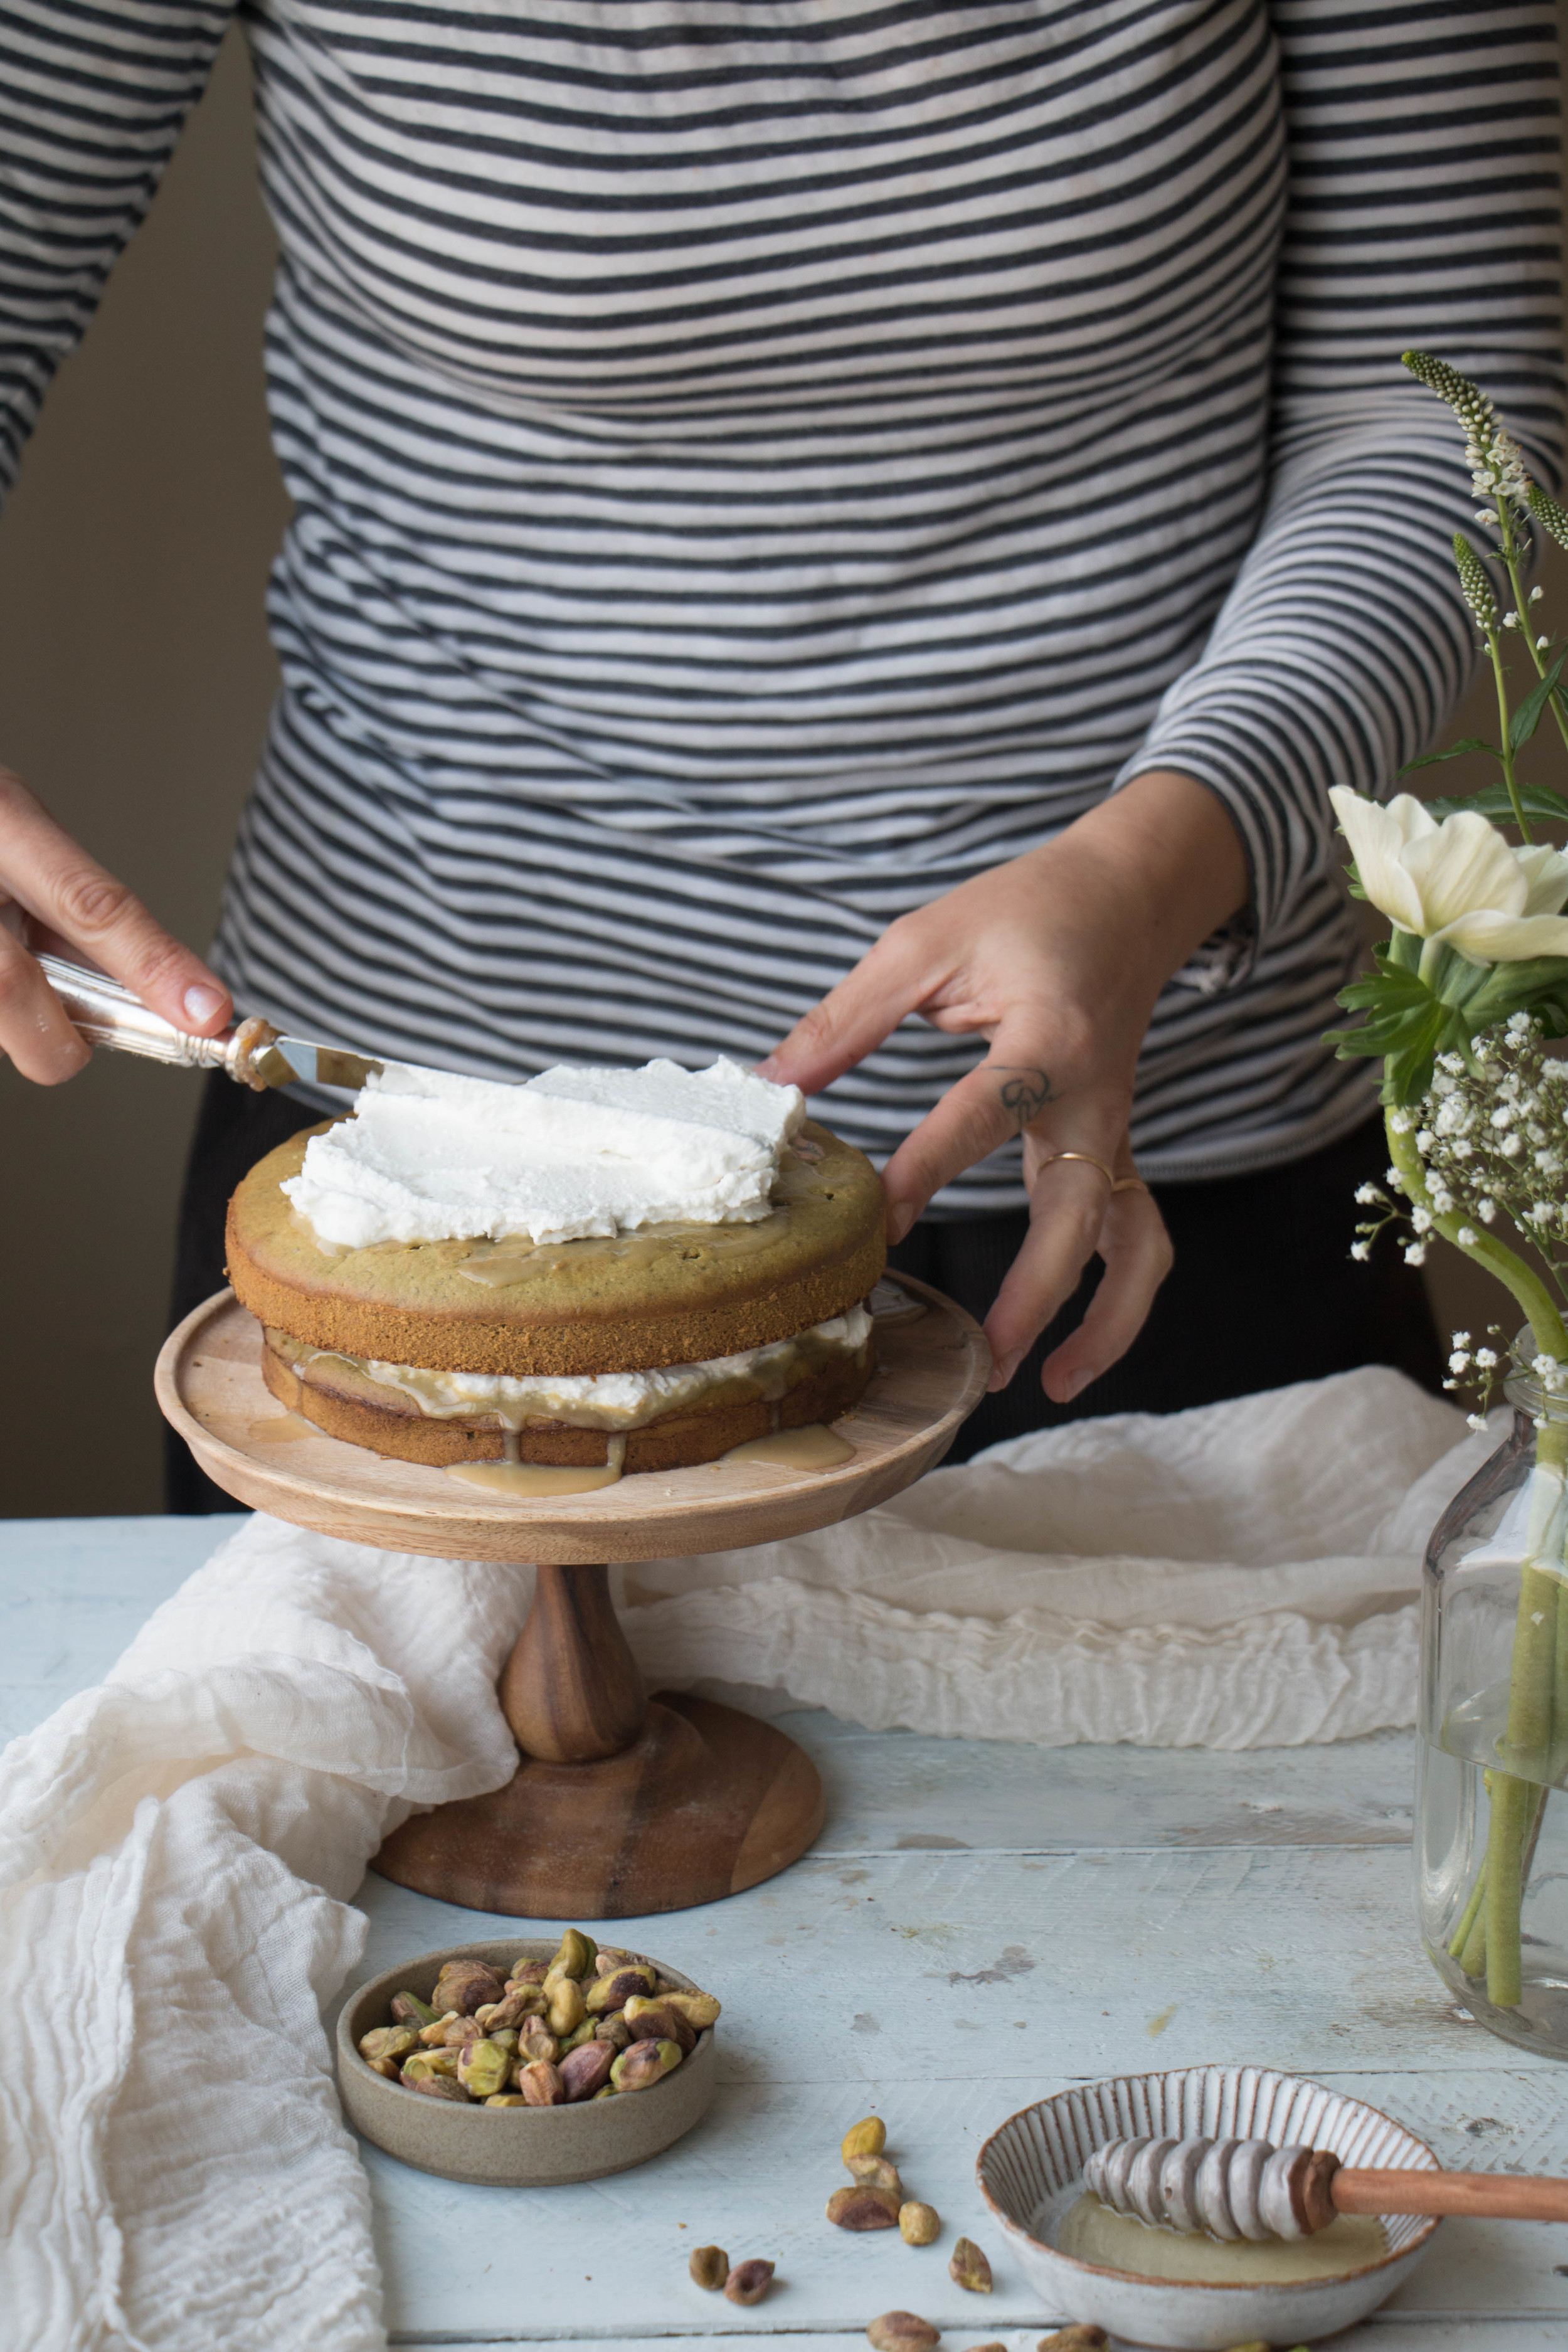 Tres Leches Vegan Cake  - photo by Aimee at twiggstudios.com